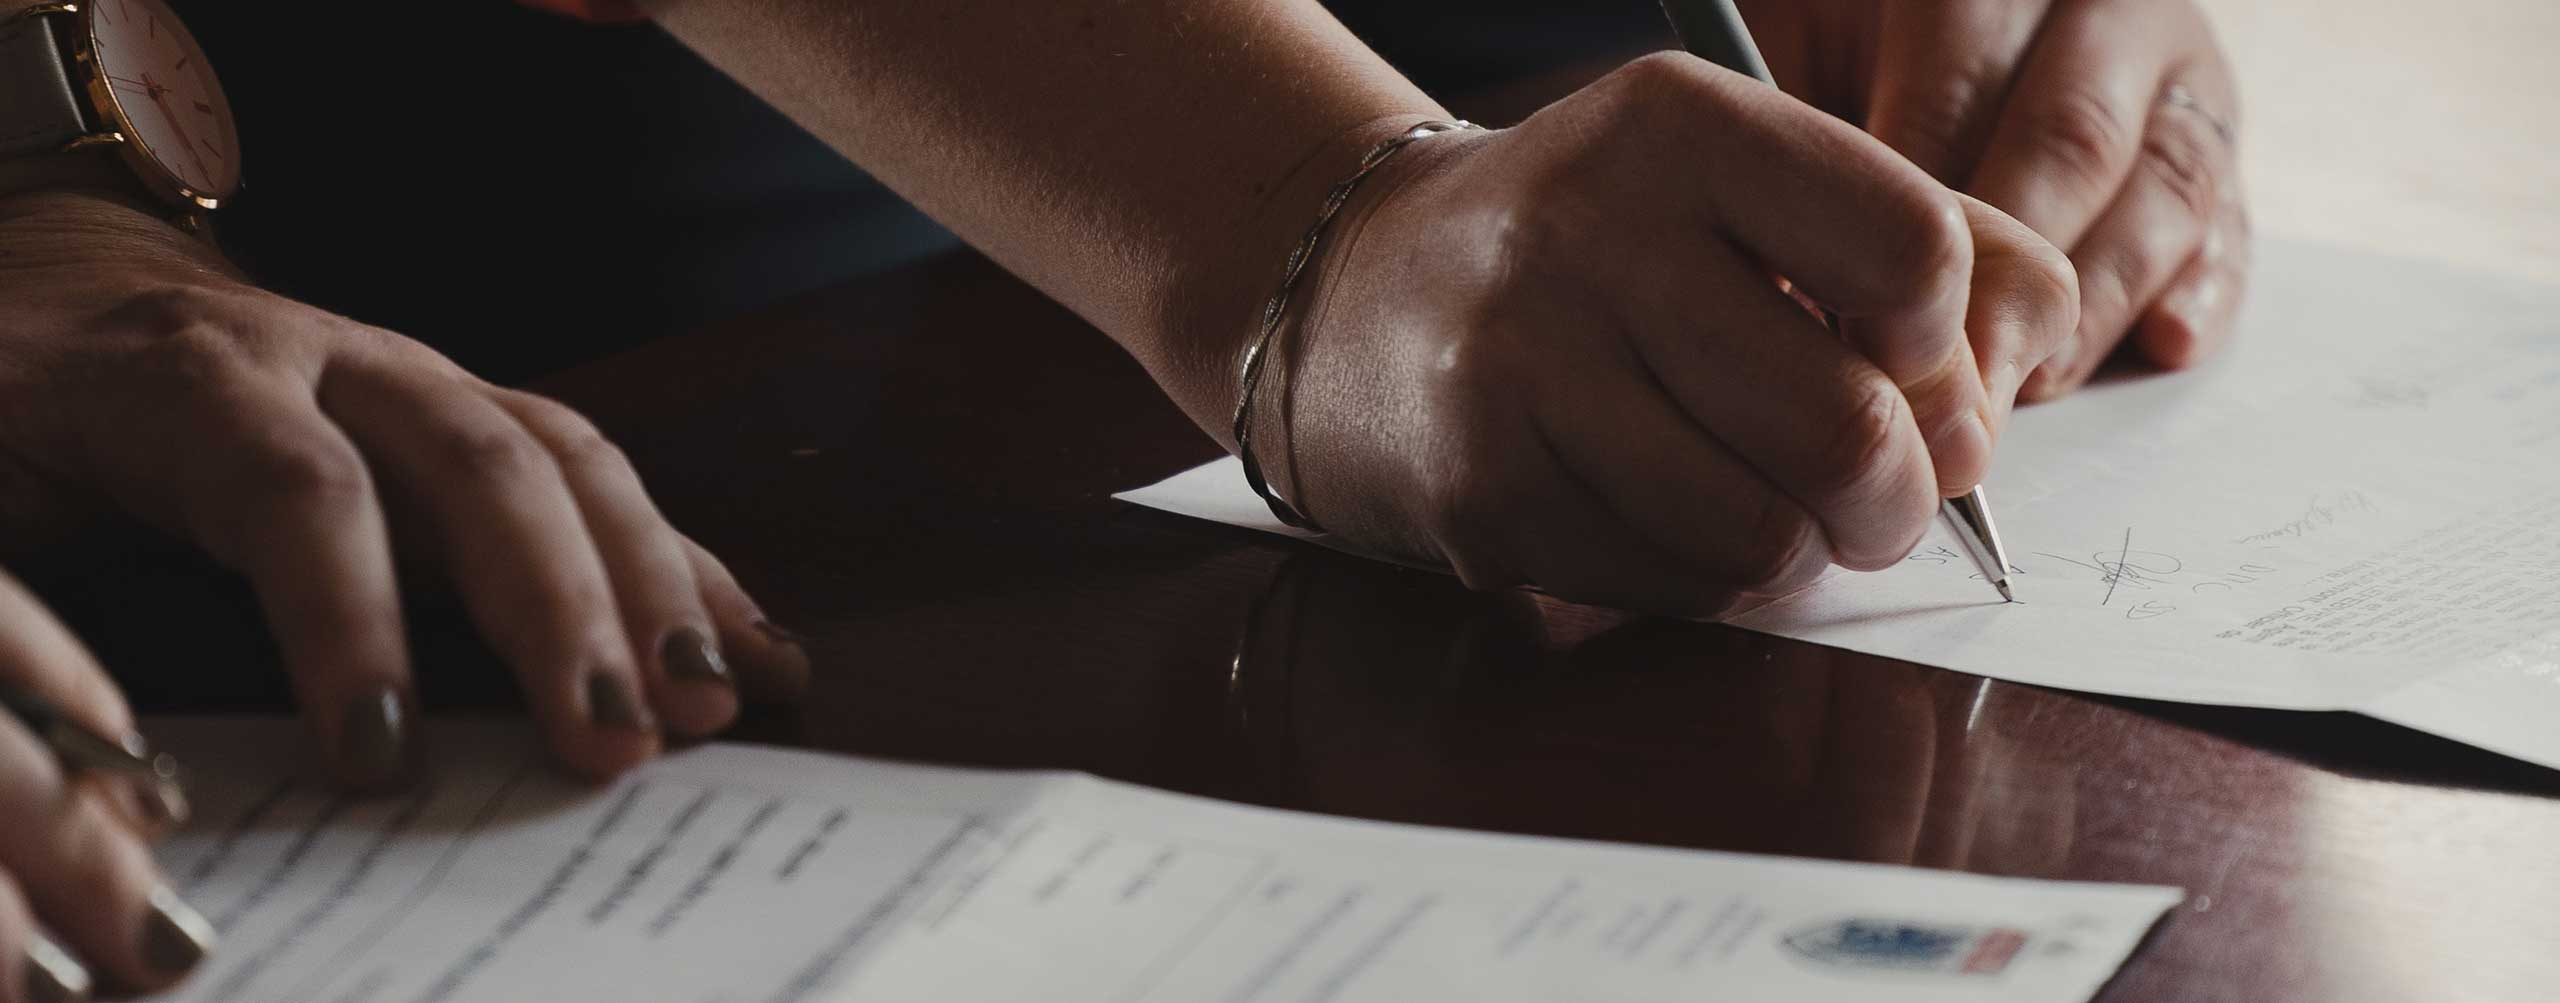 commercial contract lawyers Melbourne, advising on business agreements and contract matters